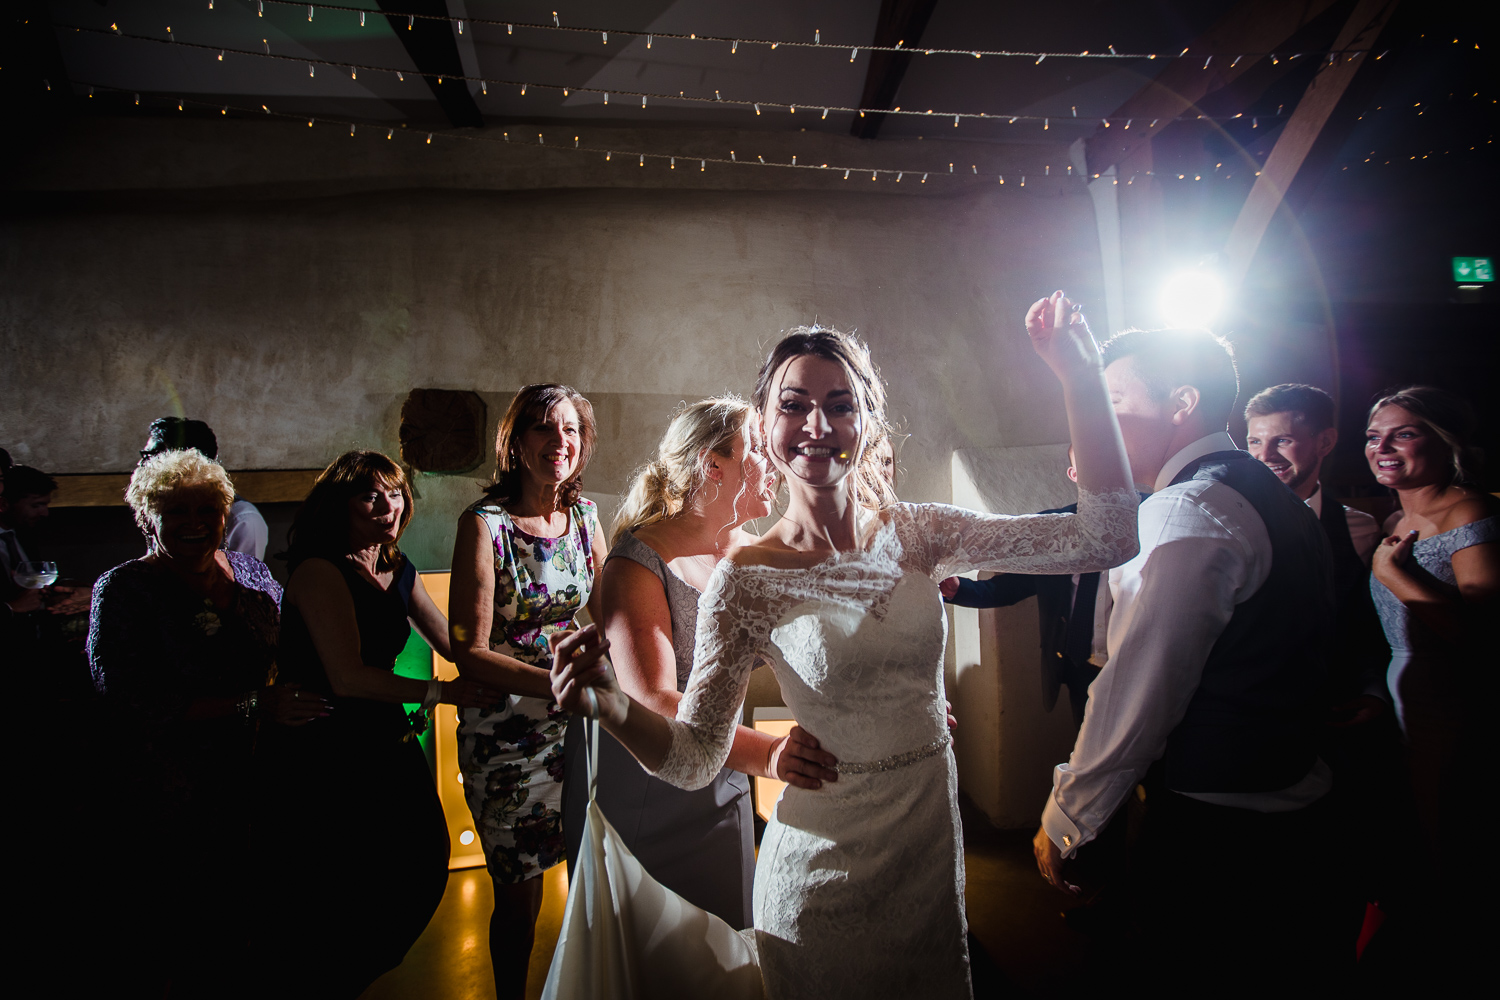 Bride dances a conga with guests following her